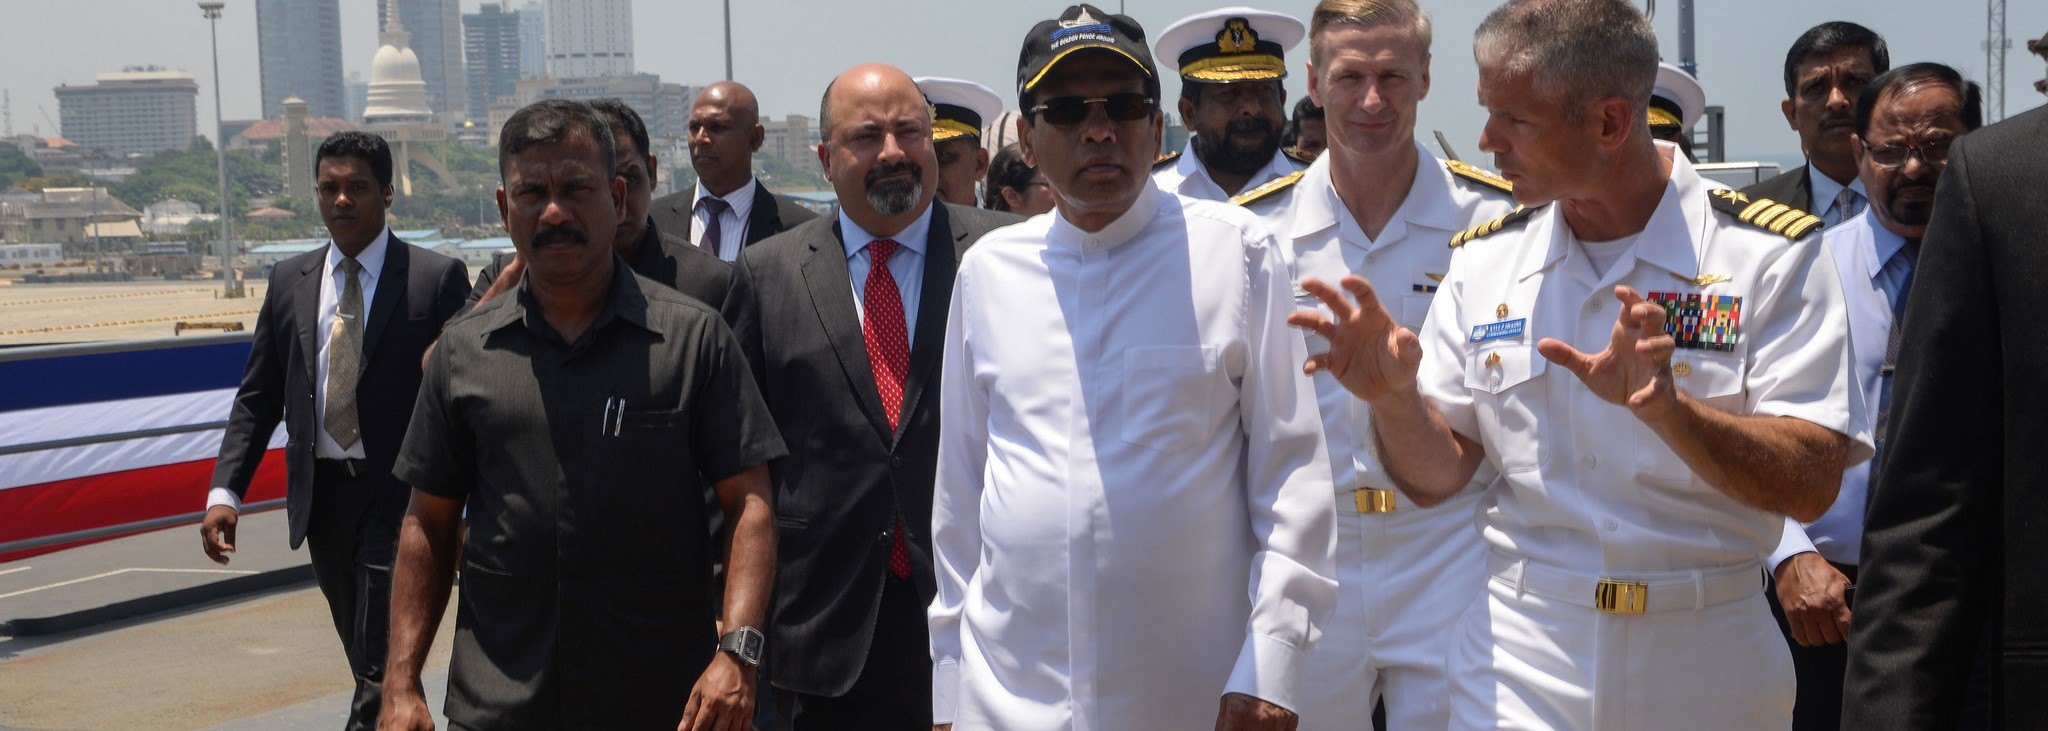 Sri Lankan President Maithripala Sirisena aboard the 7th Fleet flagship USS Blue Ridge in March, 2016 (Photo: US Pacifc Fleet)